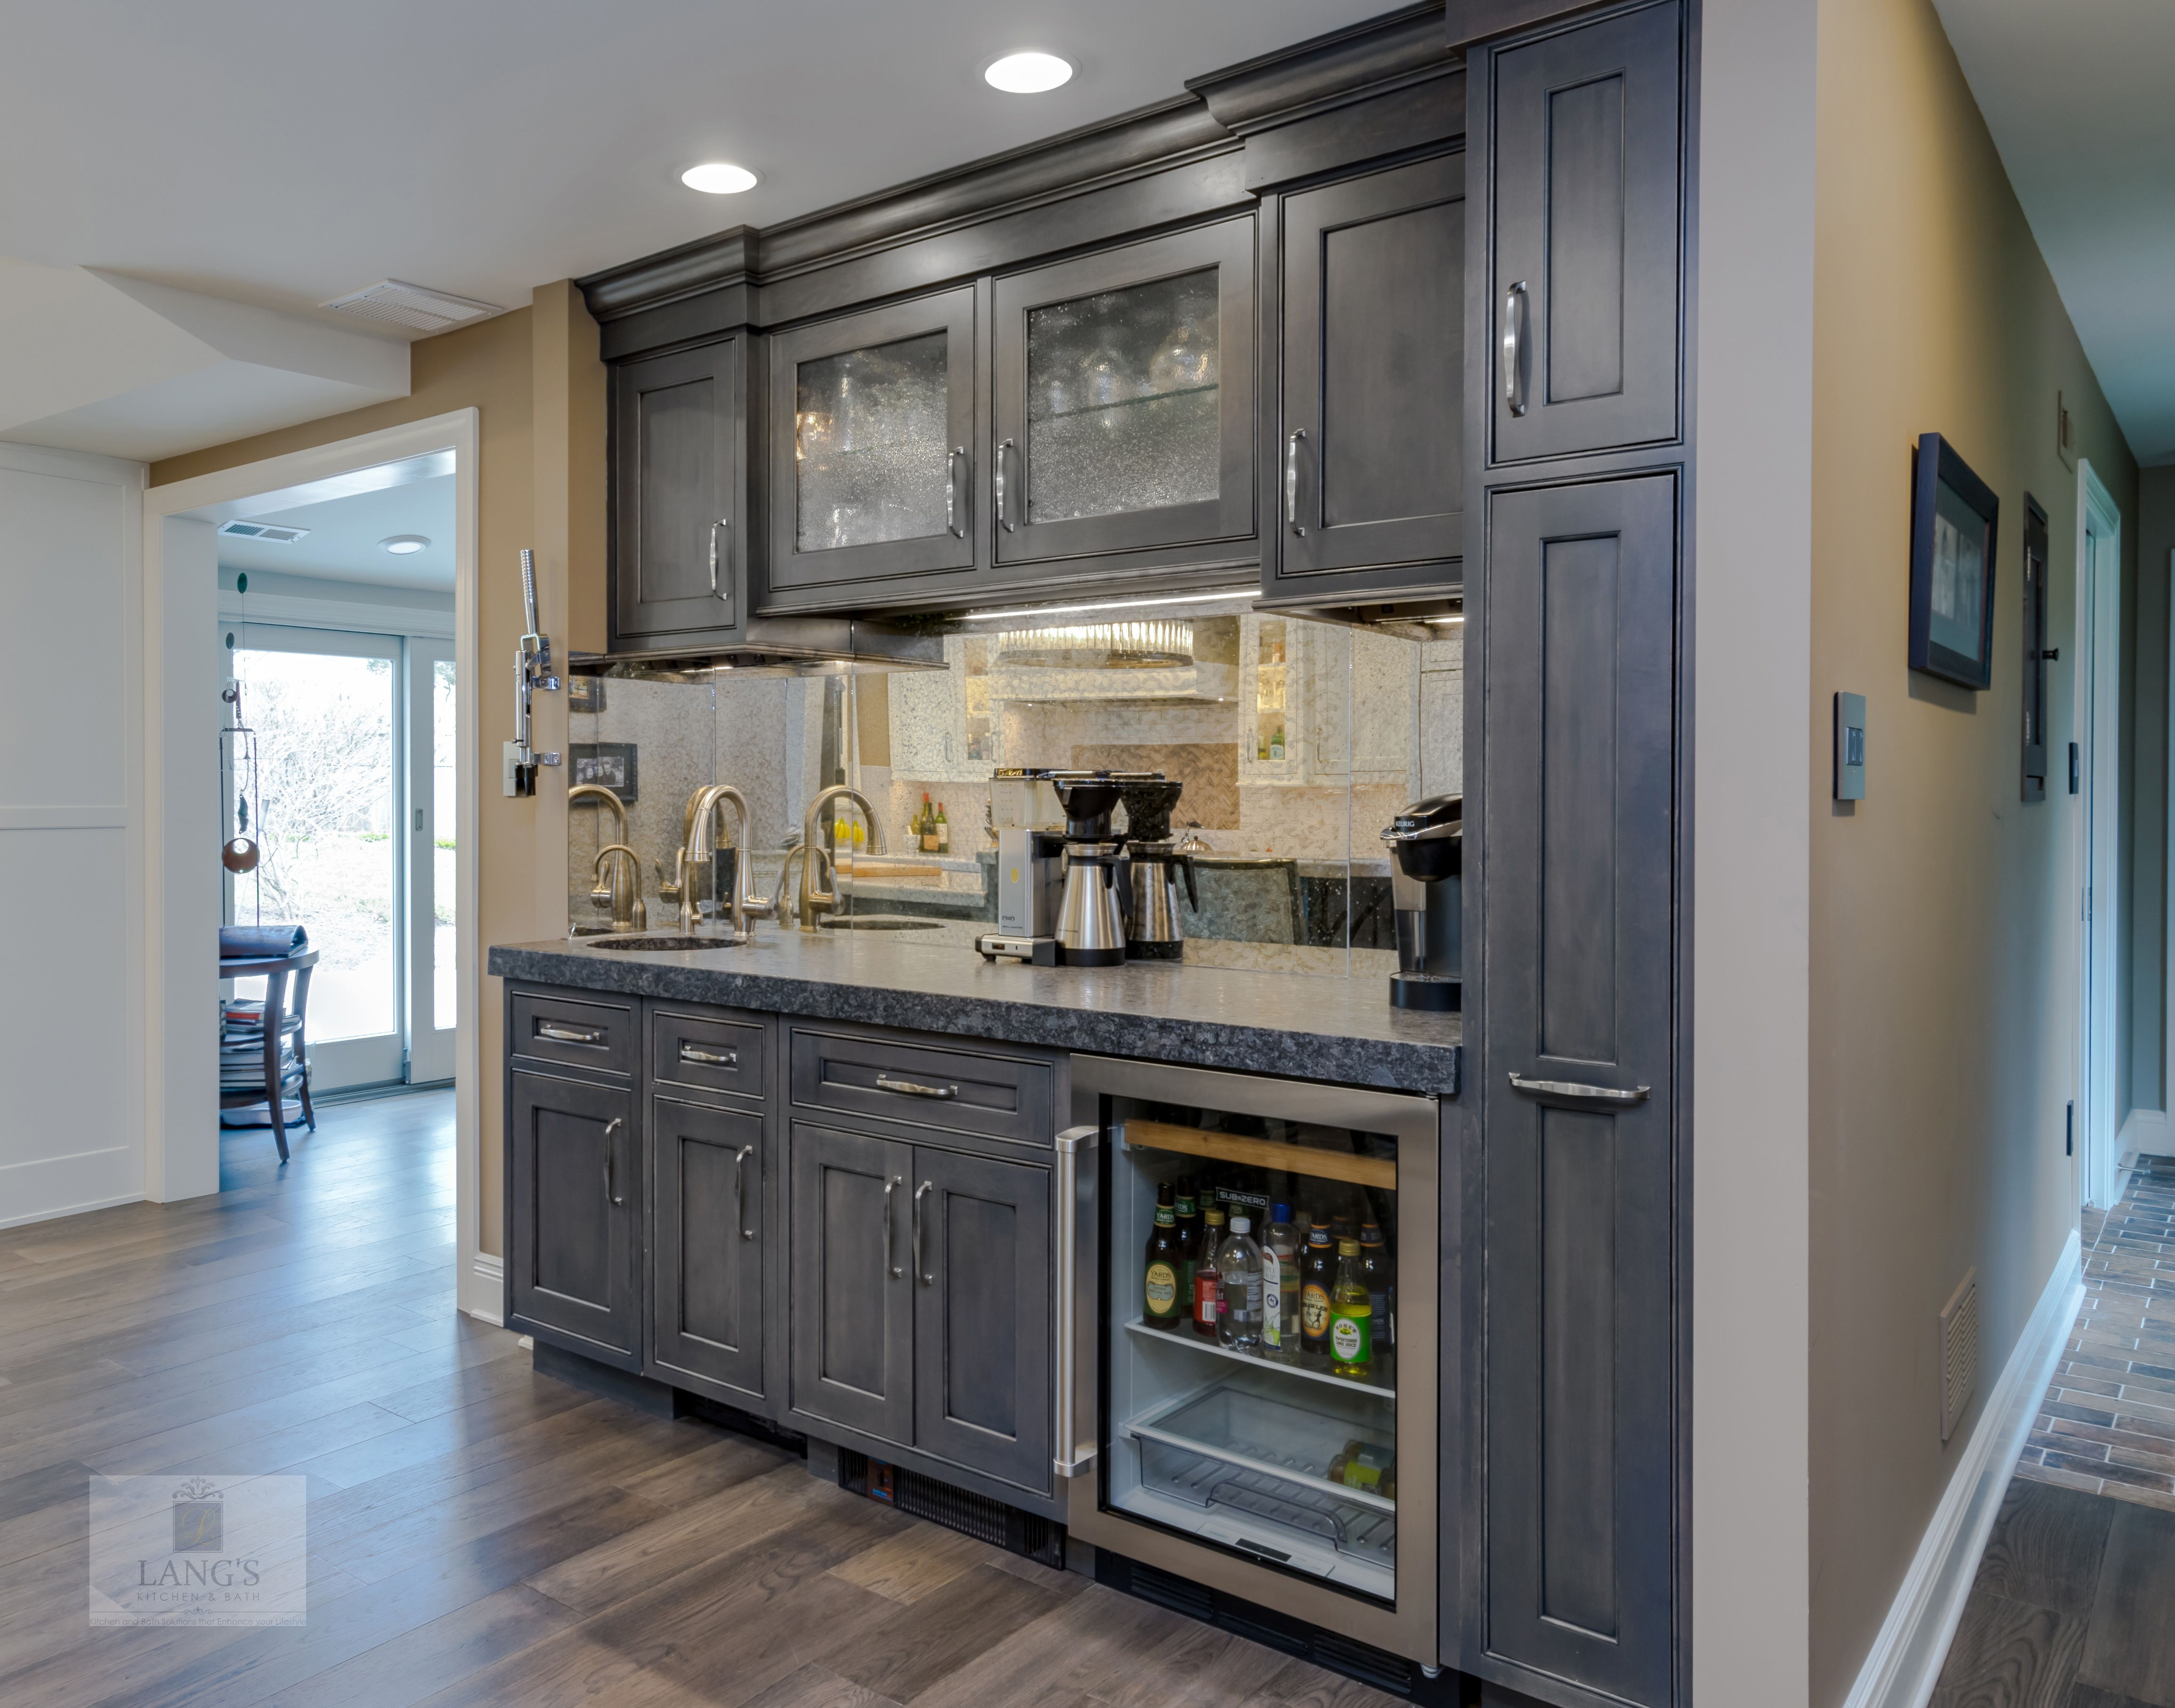 This Transitional Style Kitchen Remodel Is The Heart And Soul Of This Yardley Pa Home The Combinat Kitchen And Bath Design Kitchen Design New Kitchen Designs